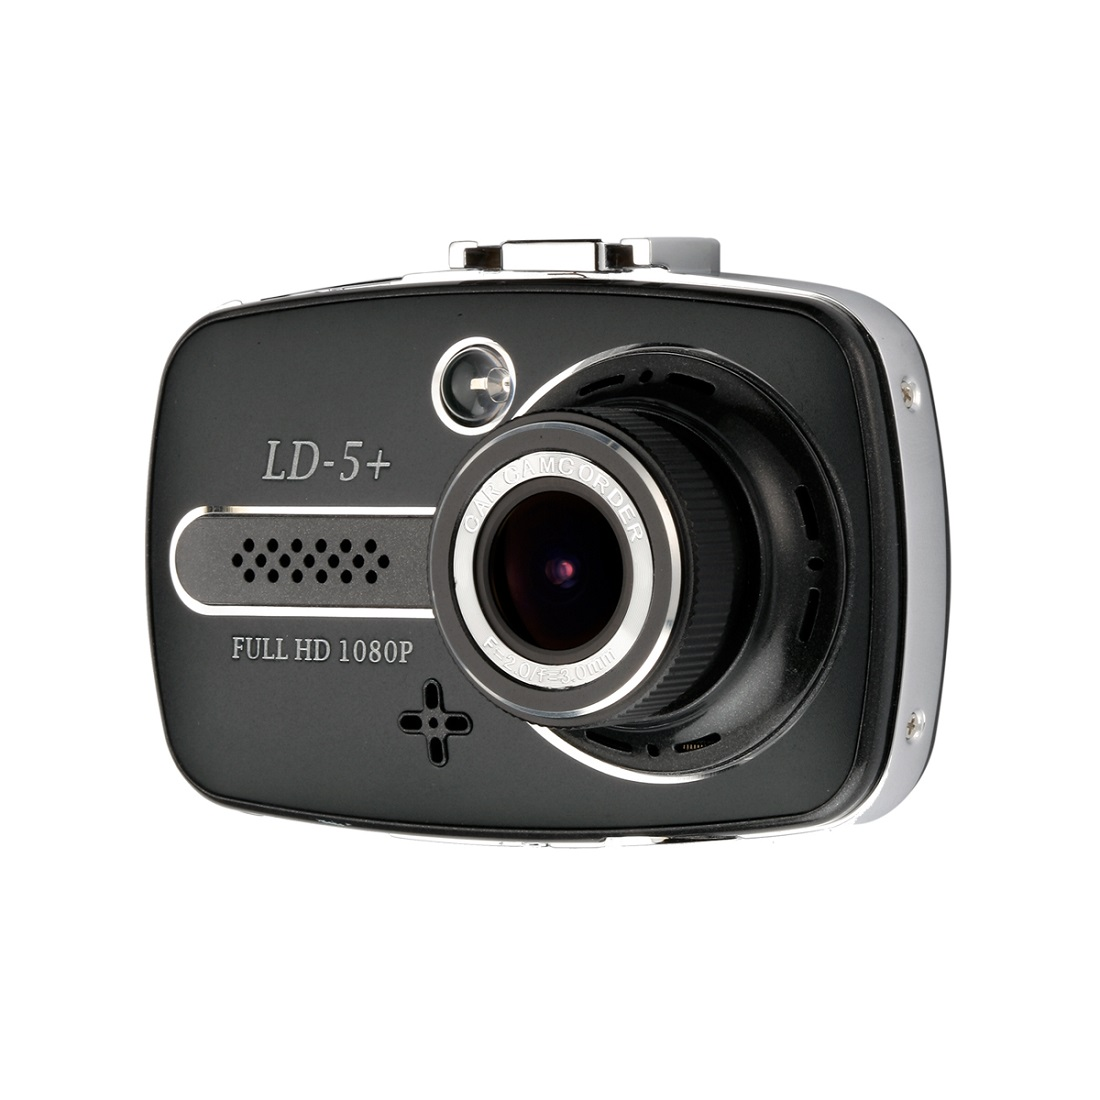 Car Dashboard Camera with GPS LD-5+